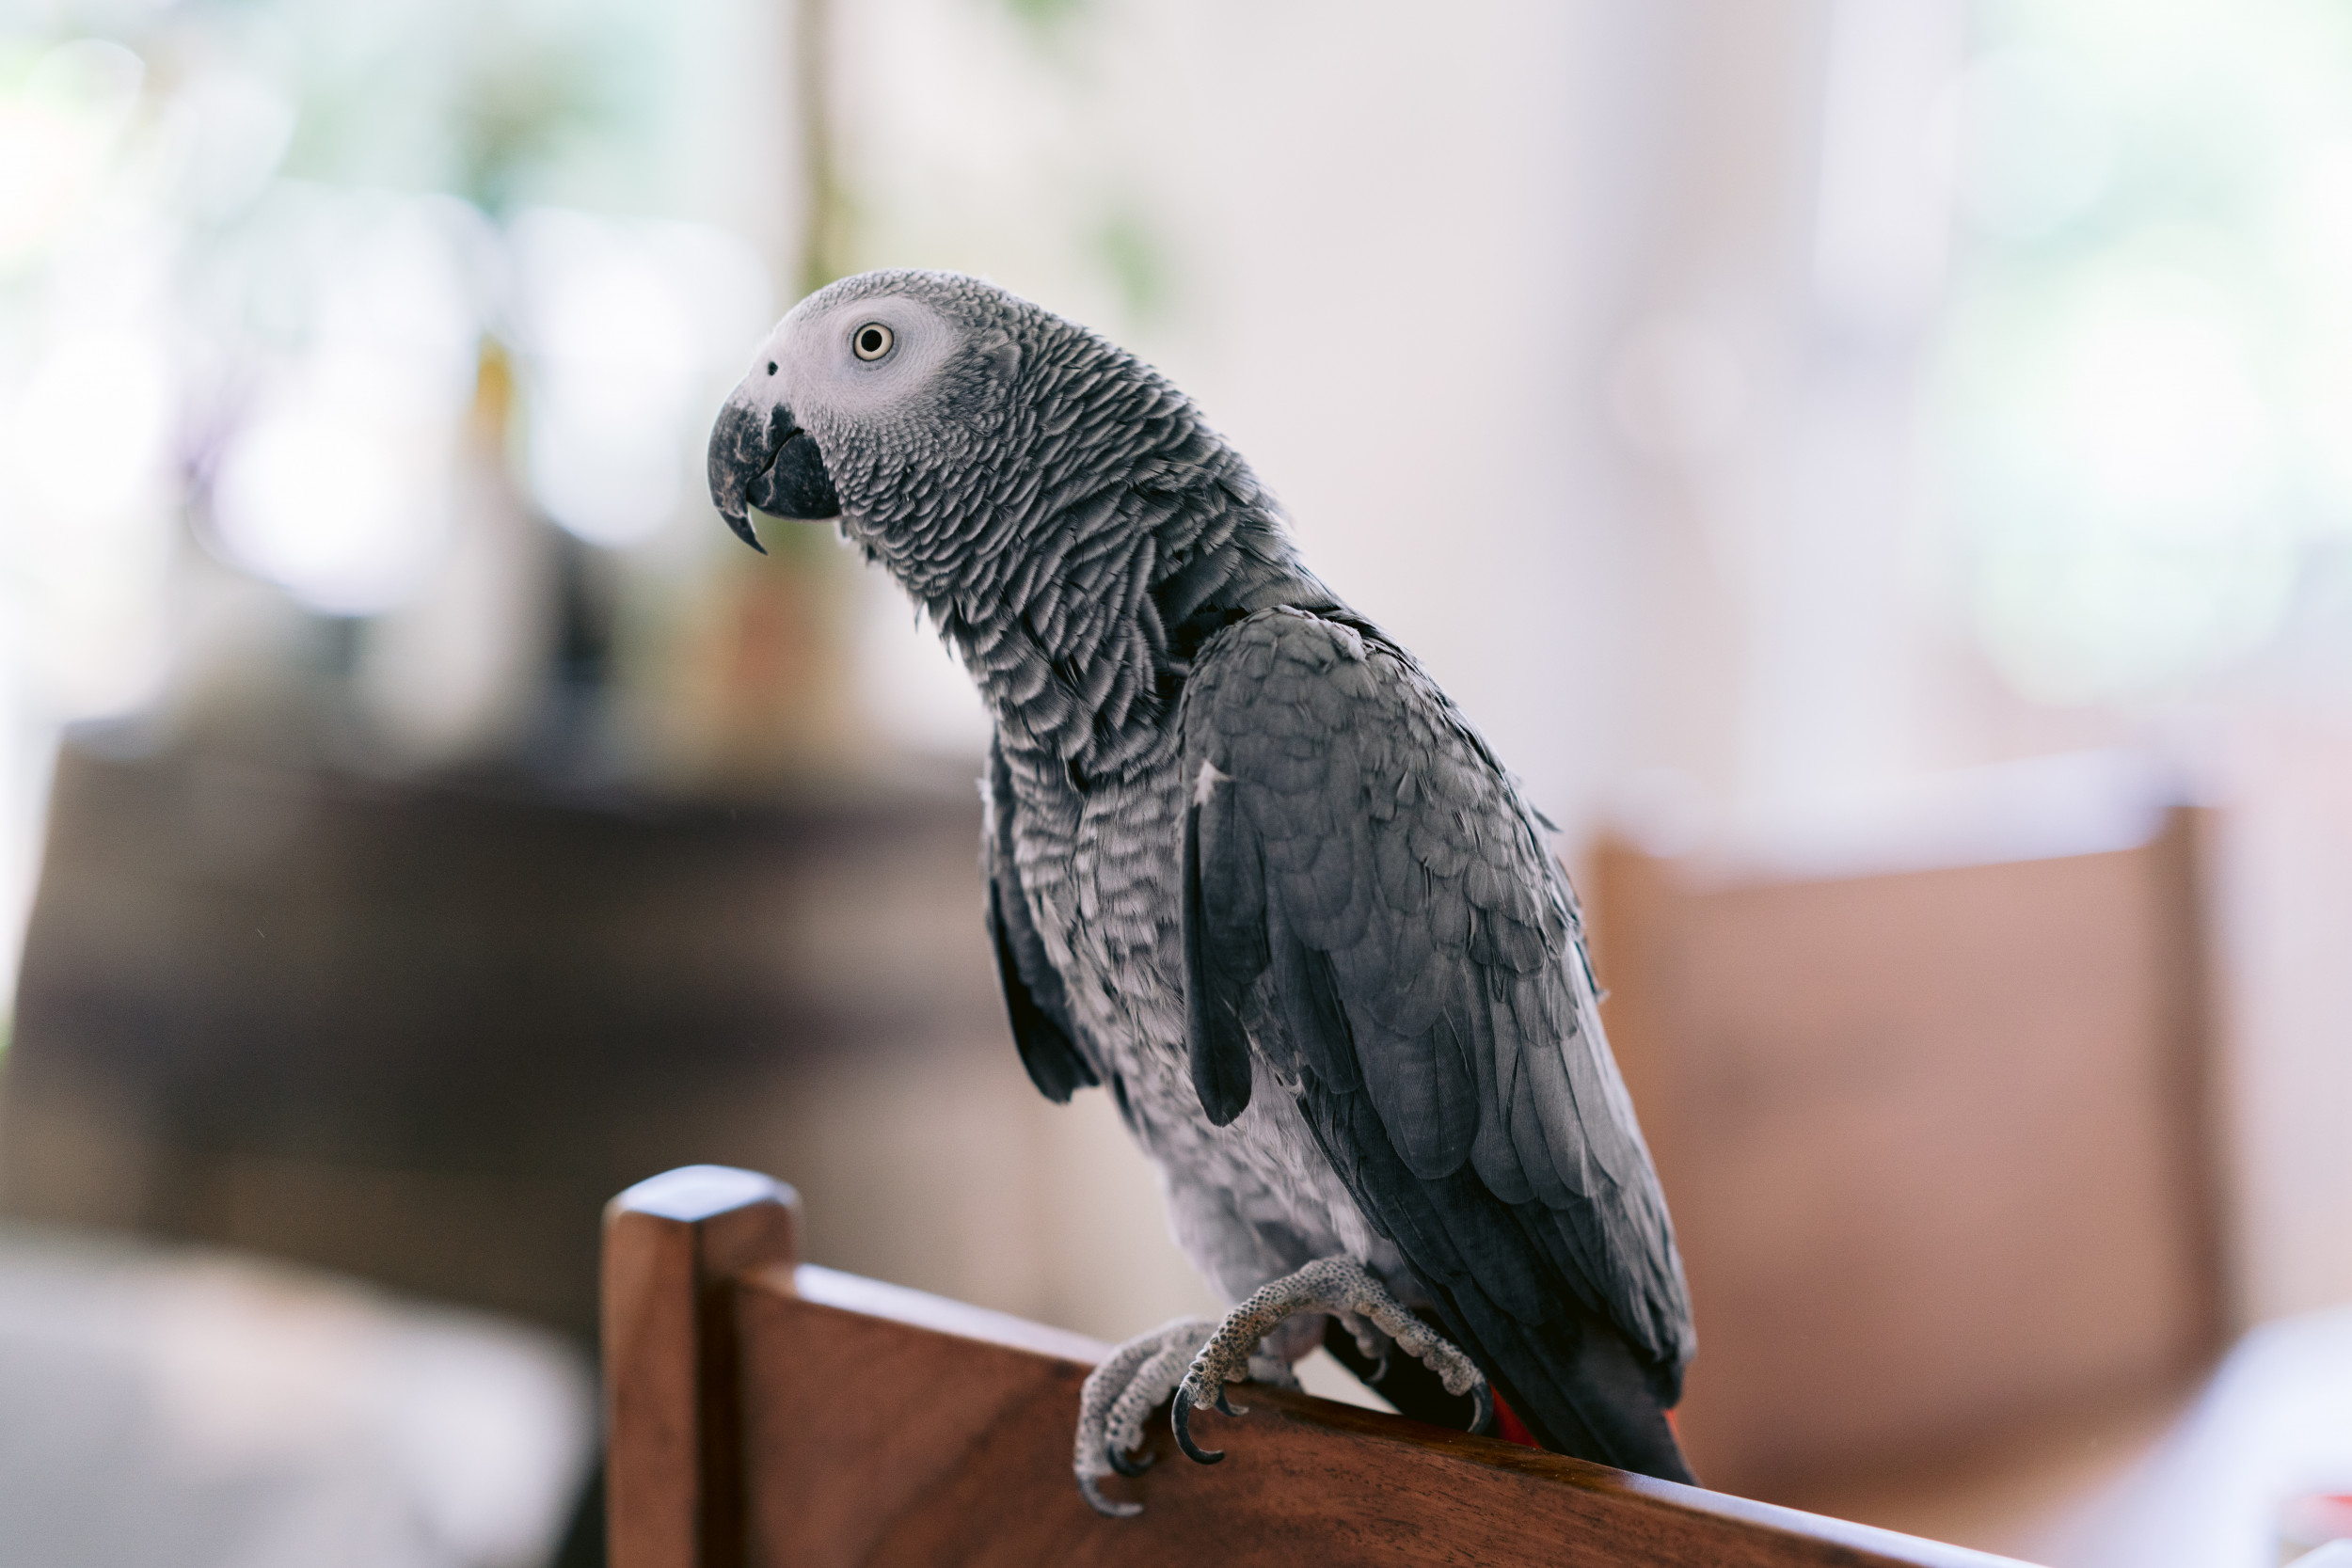 Parrot Hilariously Asks Alexa to Add Pulled Pork to Shopping List – Newsweek